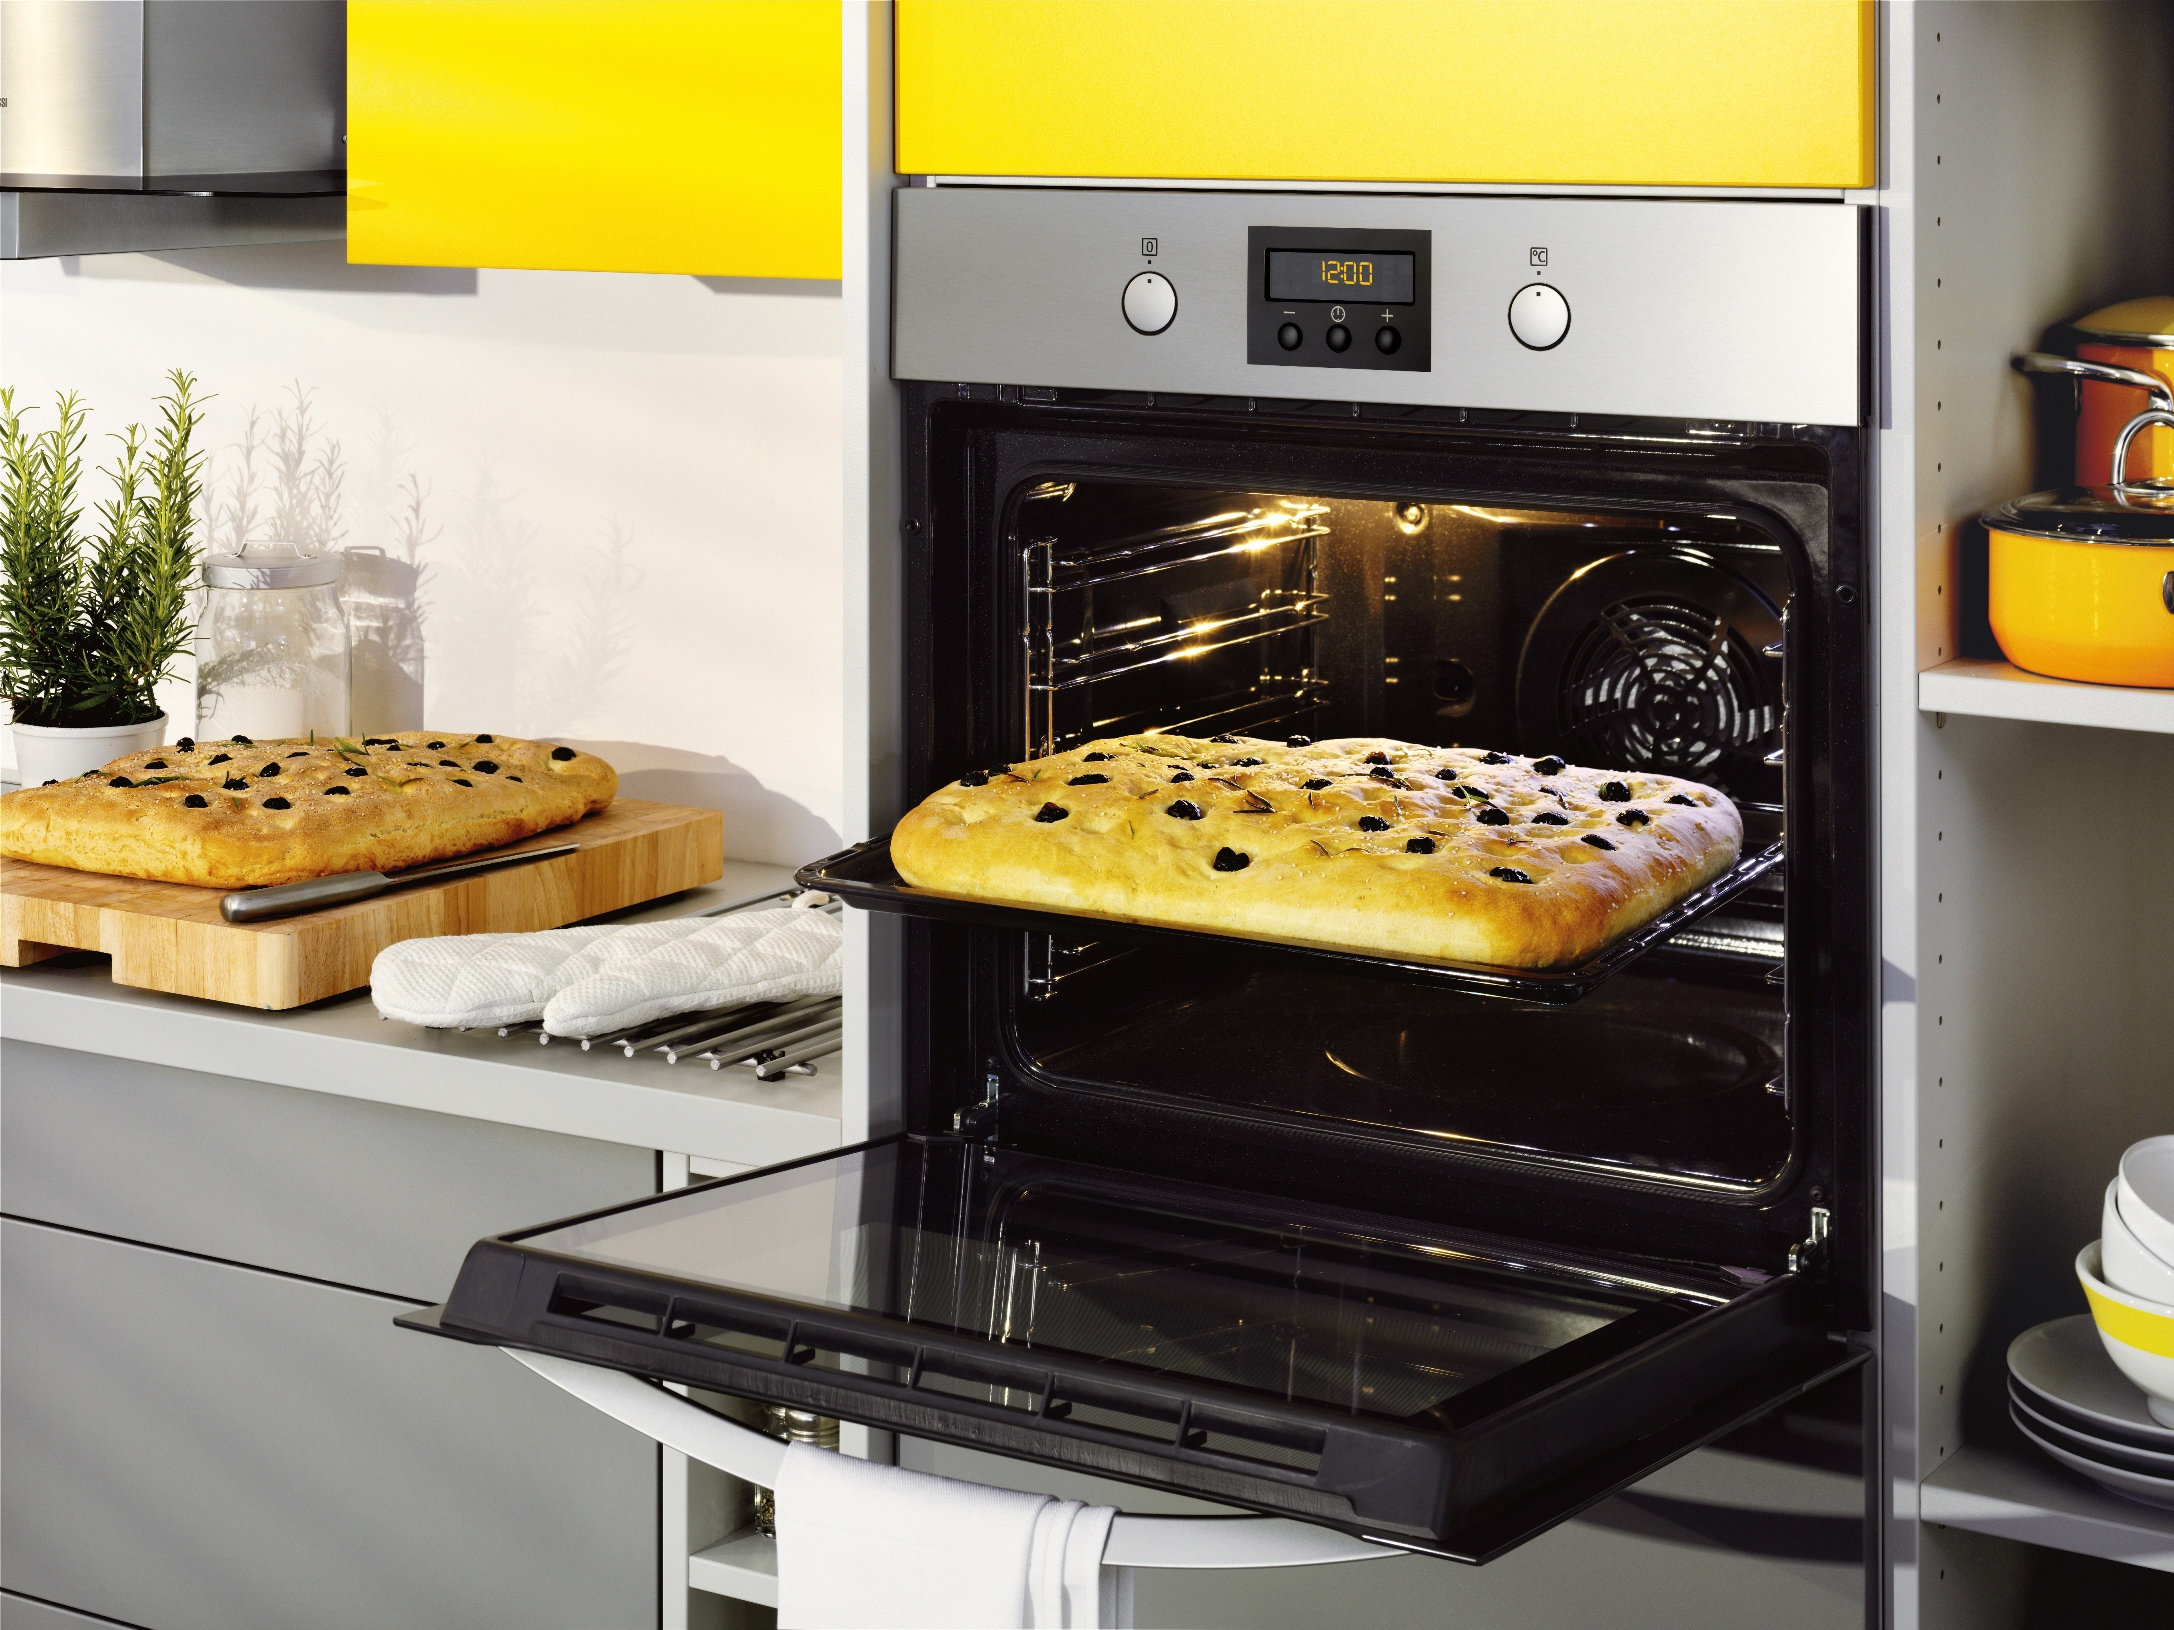 10-tips-to-keep-your-appliances-in-good-shape_03